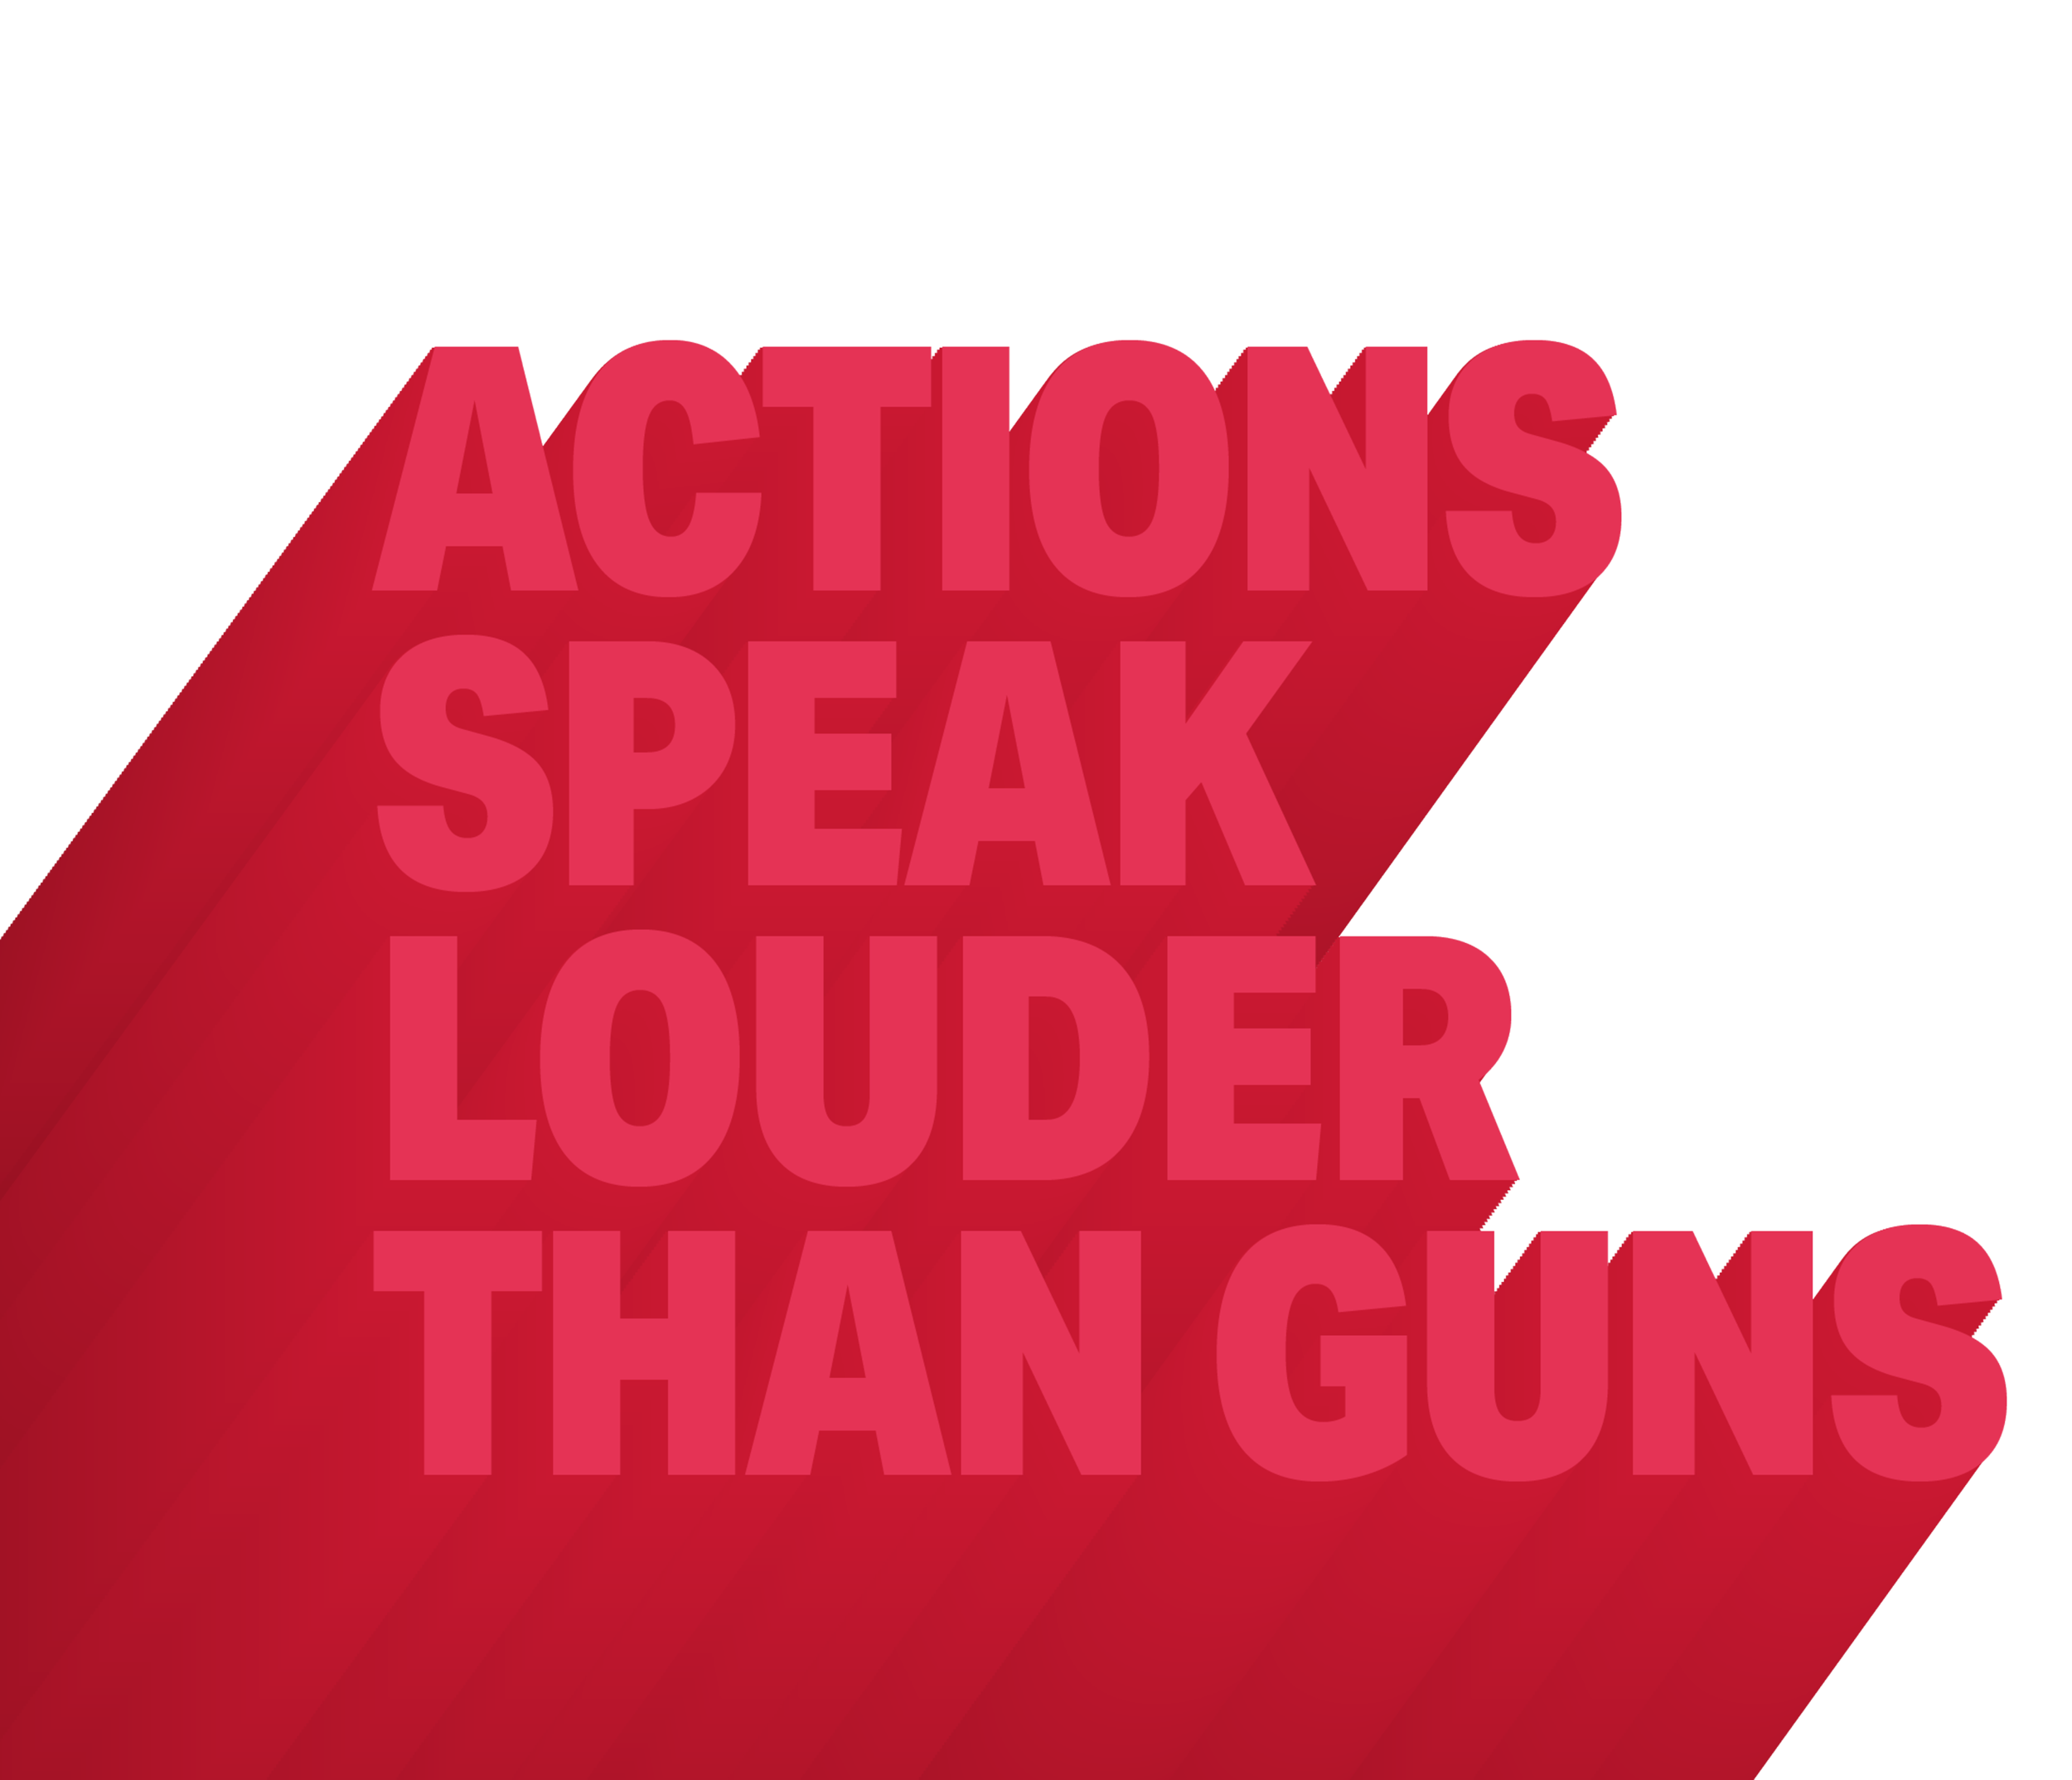 Together we can end gun violence. - On average, 100 people are killed by guns in the U.S. every day. L.A.'s young people will not accept this reality.